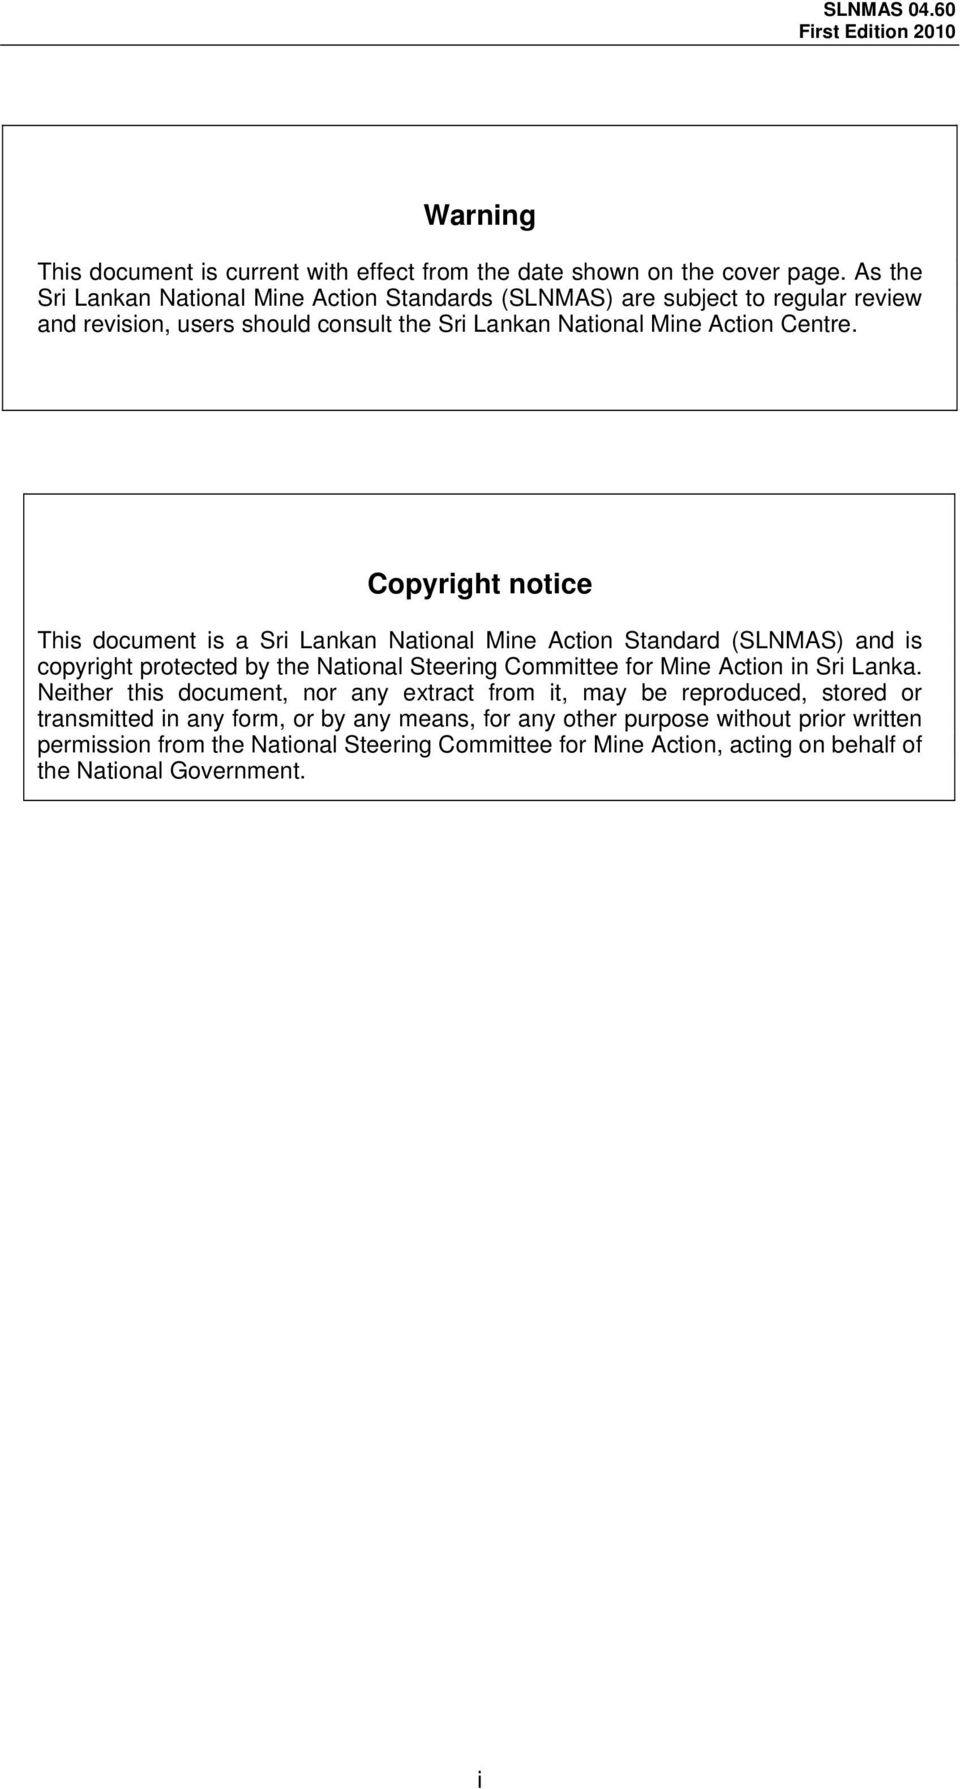 Copyright notice This document is a Sri Lankan National Mine Action Standard (SLNMAS) and is copyright protected by the National Steering Committee for Mine Action in Sri